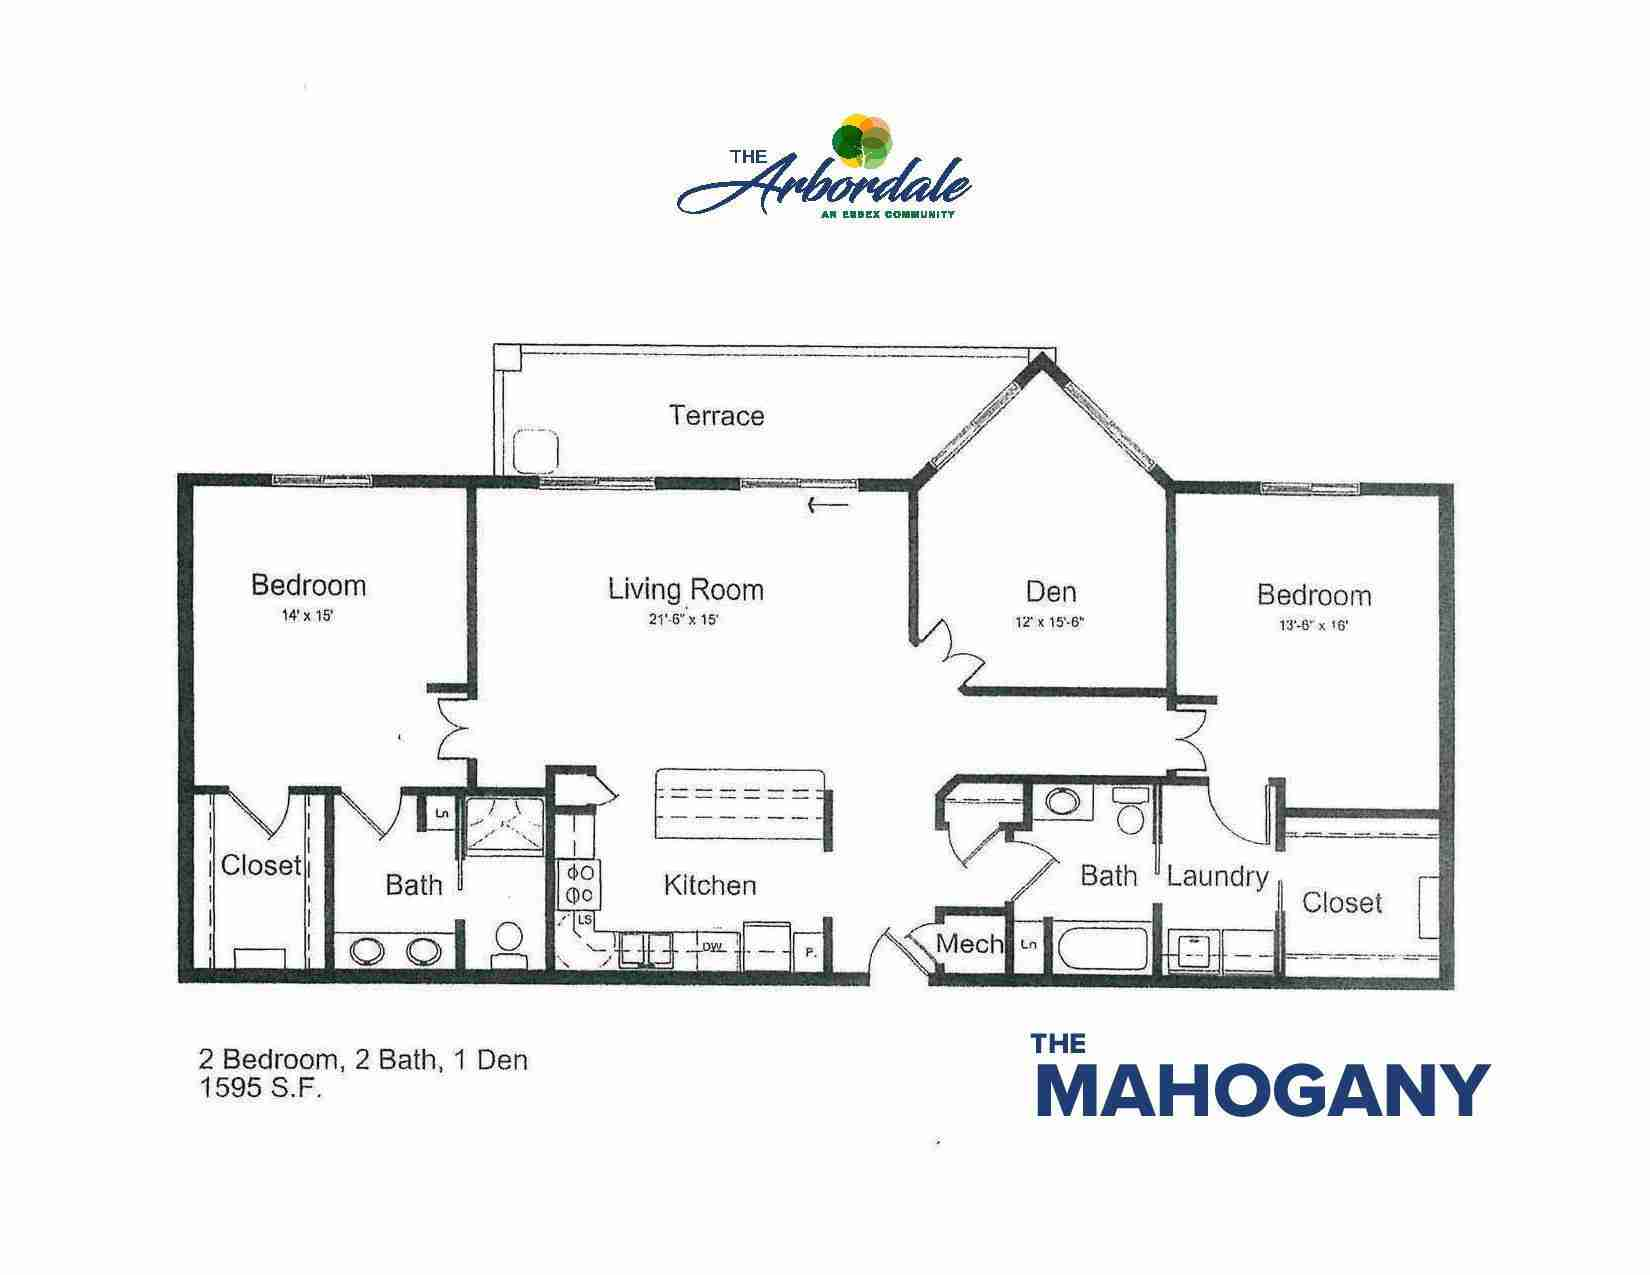 the mahogany floor plan, 2 bedroom, 2 bath, 1 den, 1595 sq ft